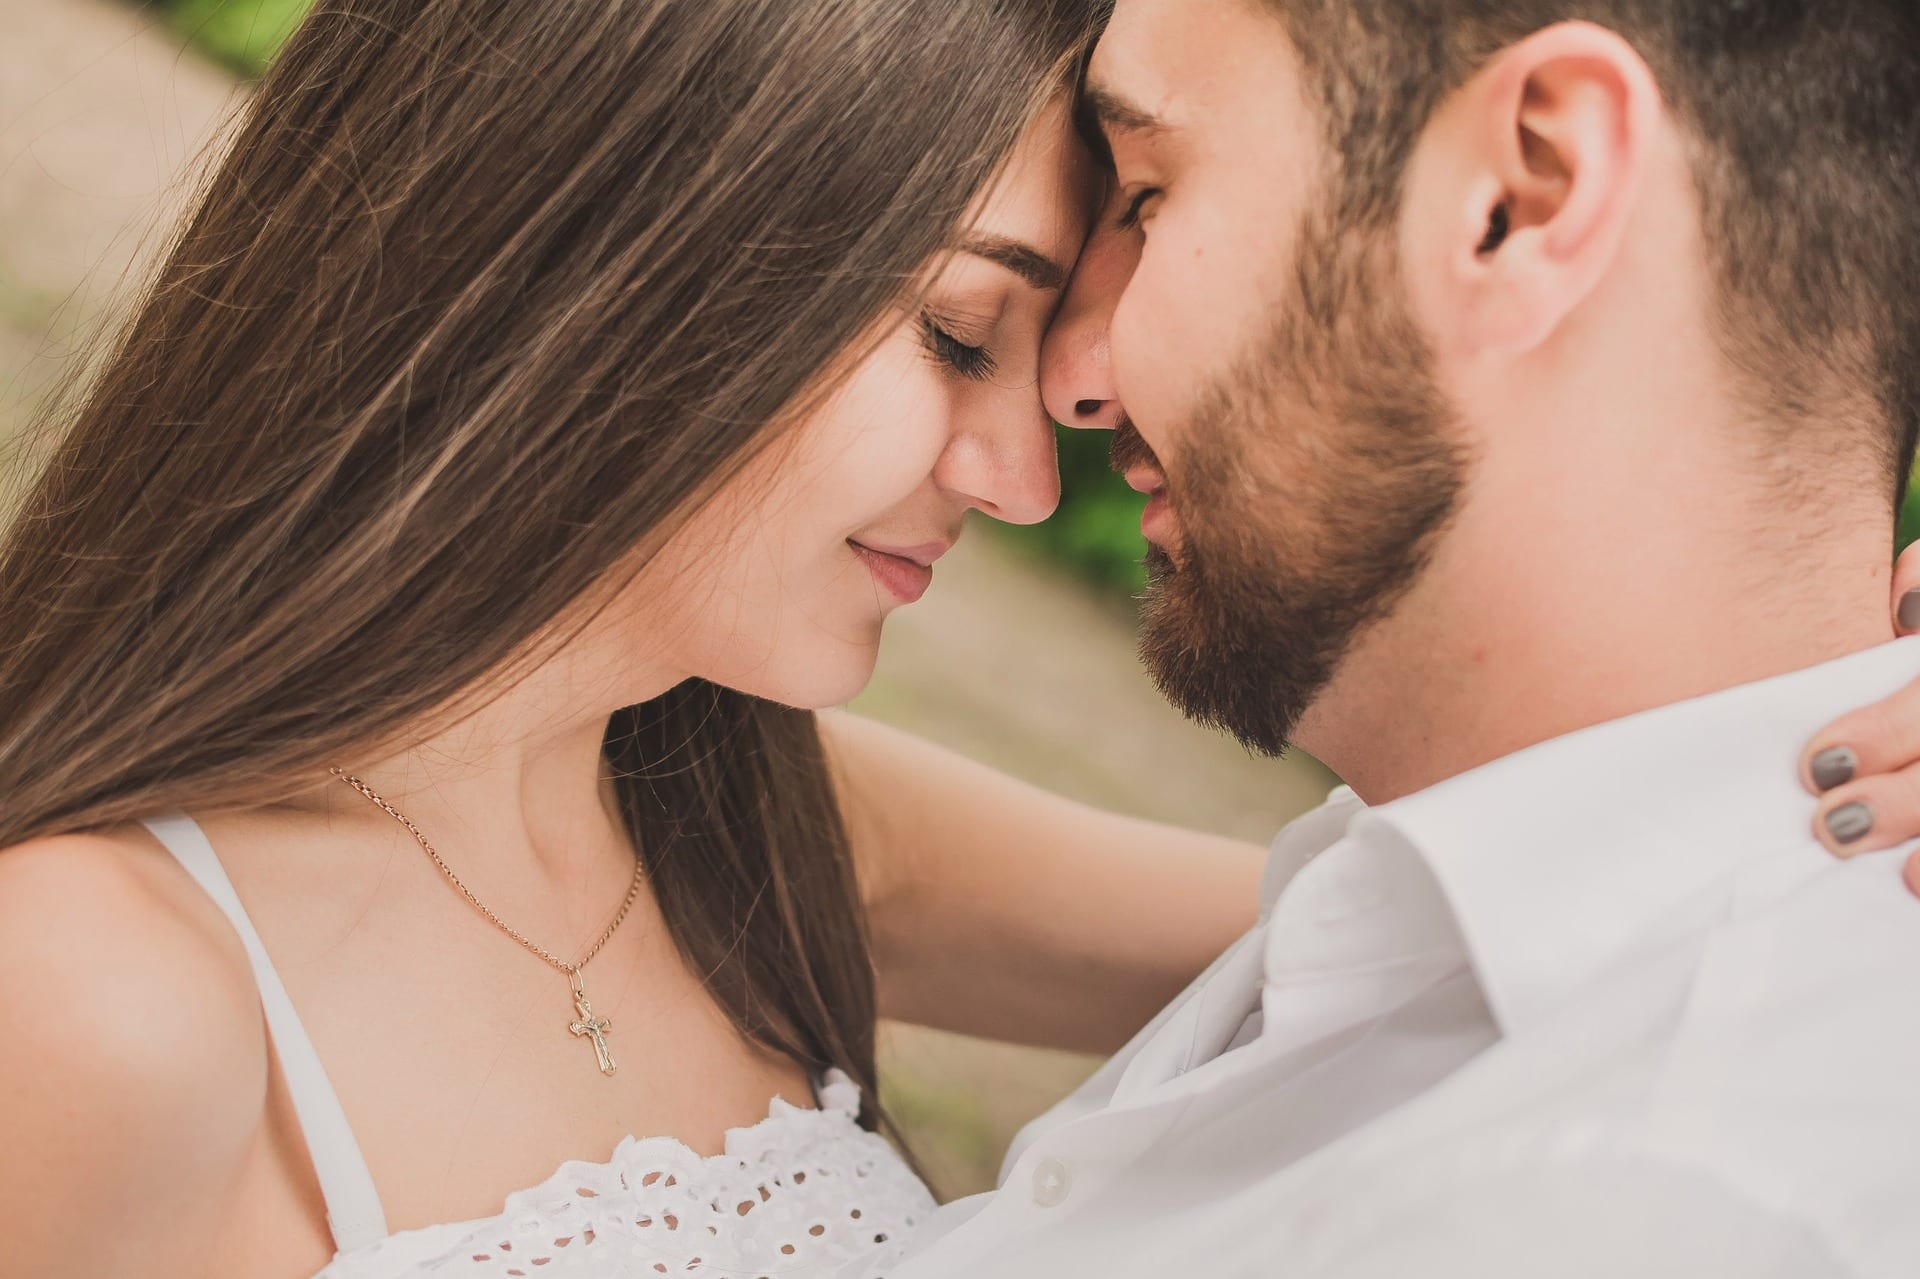 Best ways to make your wife happy everyday